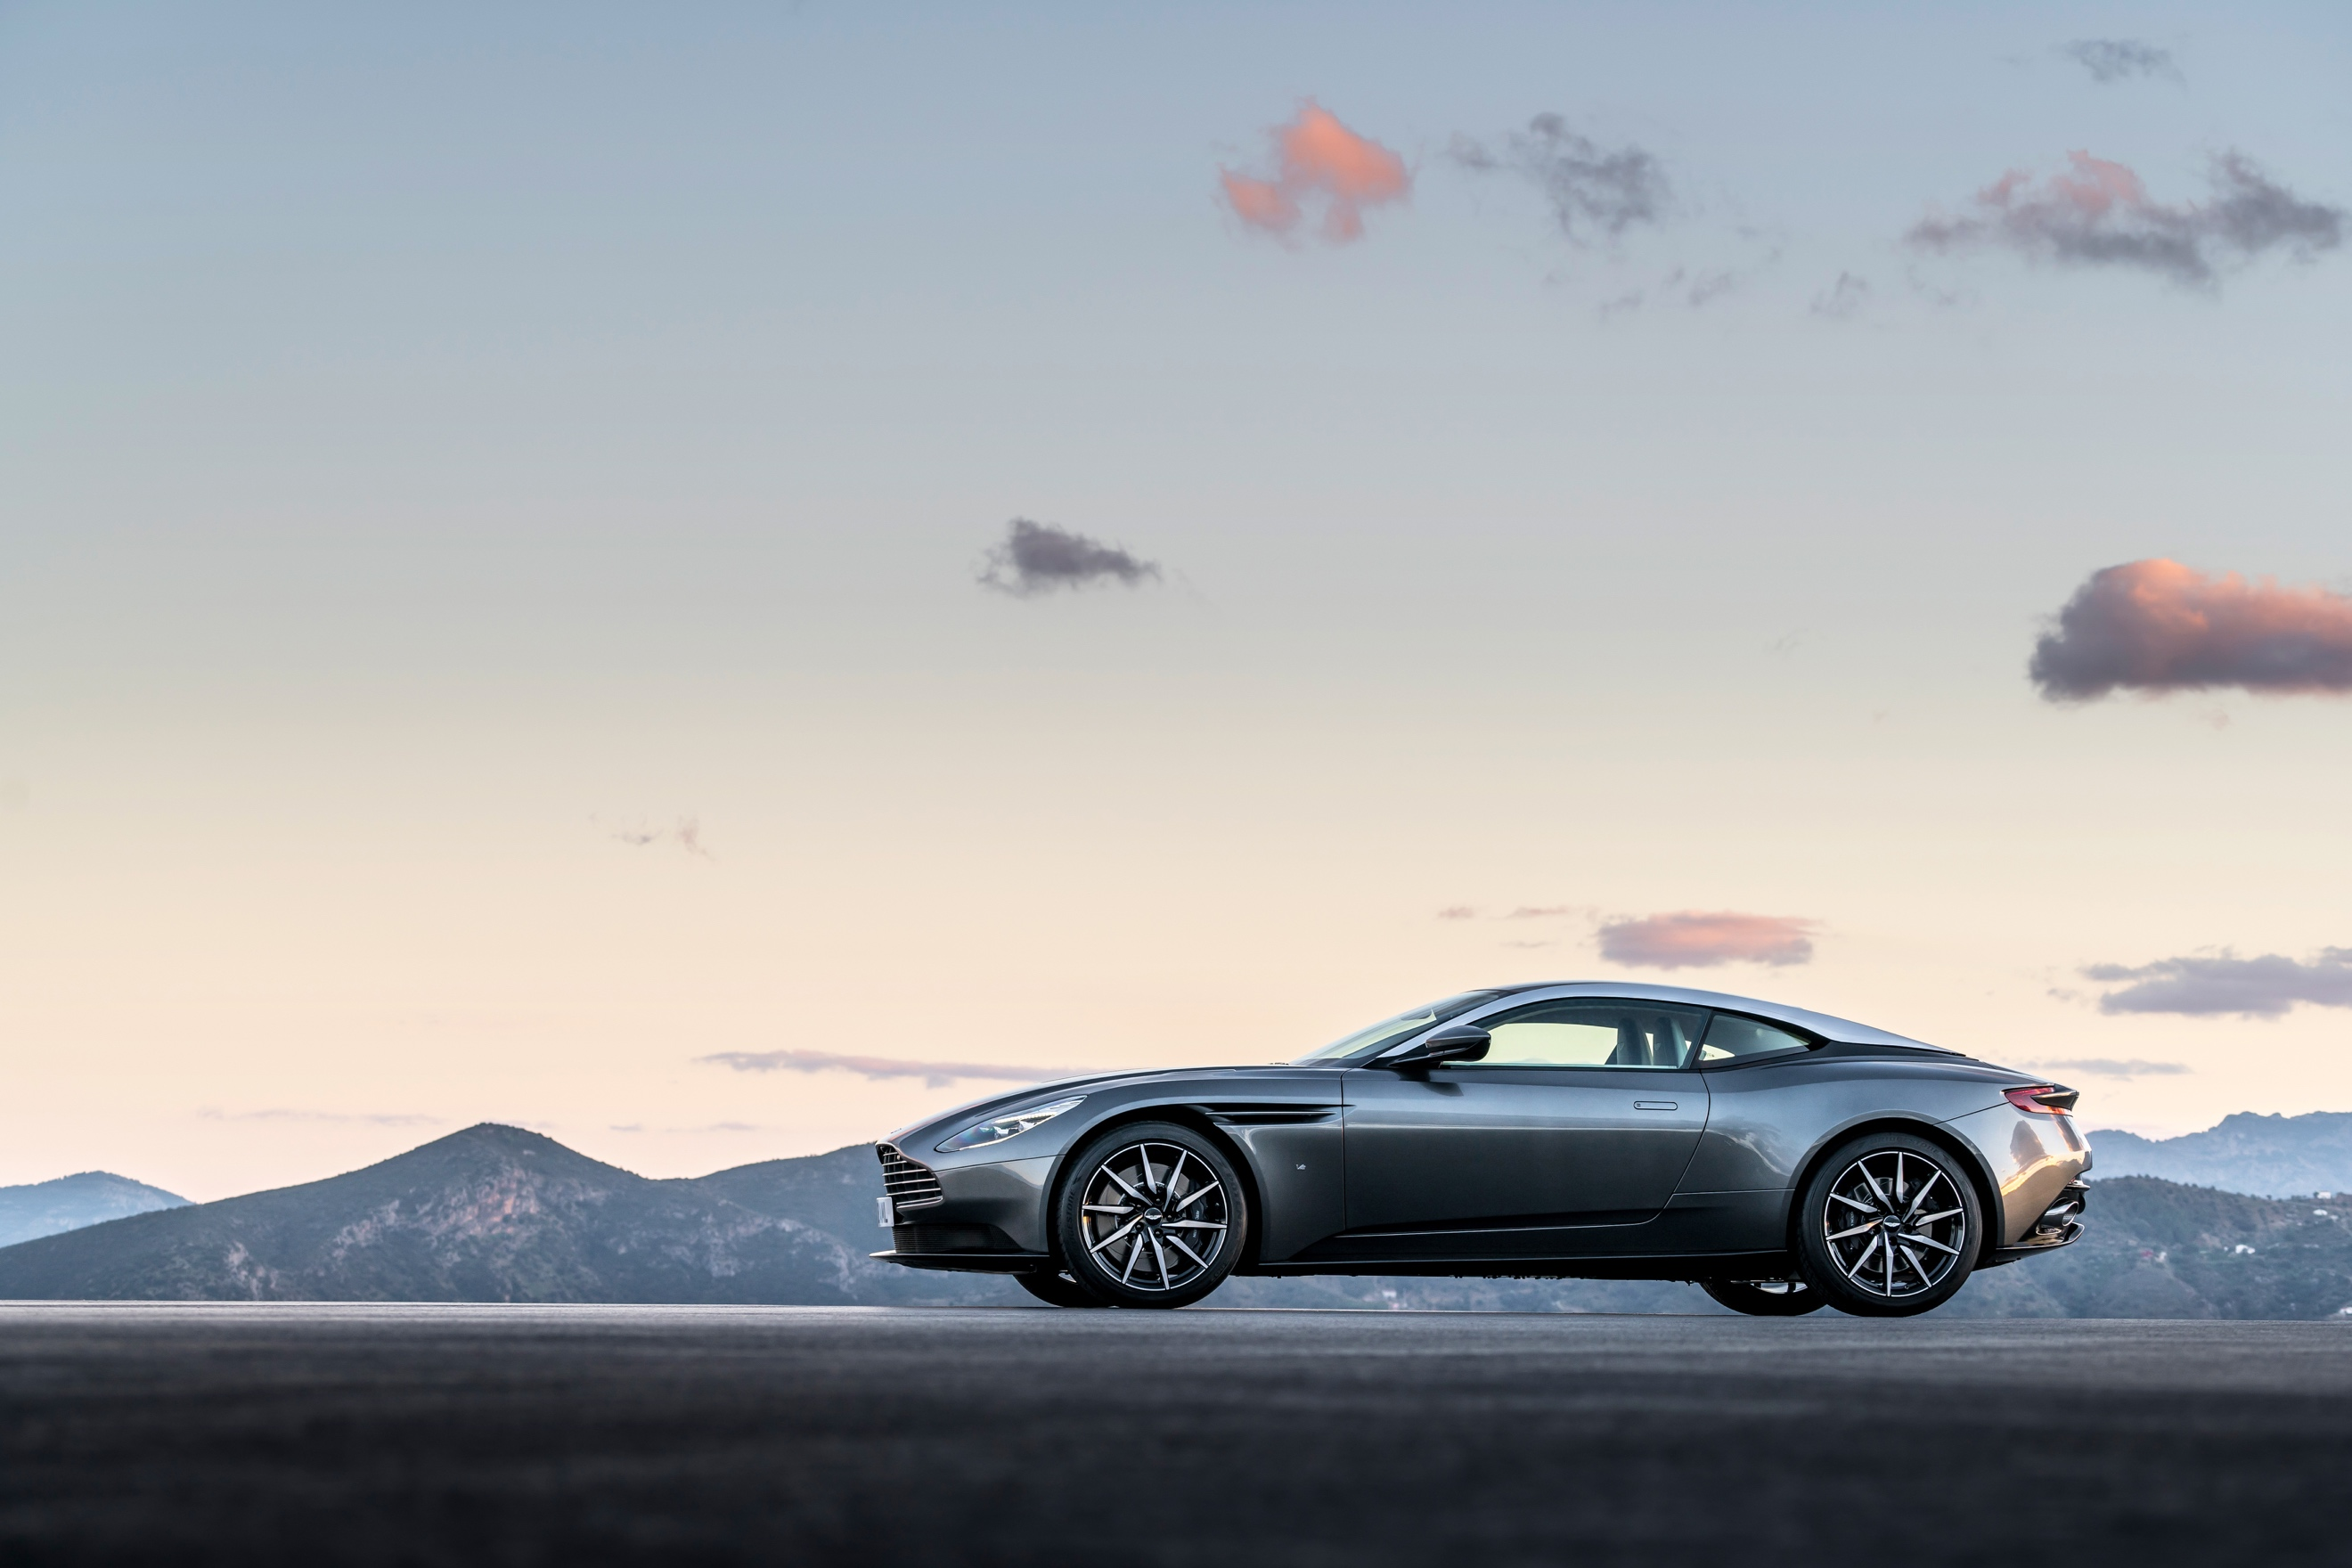 ../Press%20Kits/AstonMartin_DB11%20Press%20Kit%20-%20EMBARGO%2014/DB11%20Launch%20Photography%20(Registration%20Plate)/Aston%20Martin%20DB11_Embargo%20010316%201400CET_03.jpg